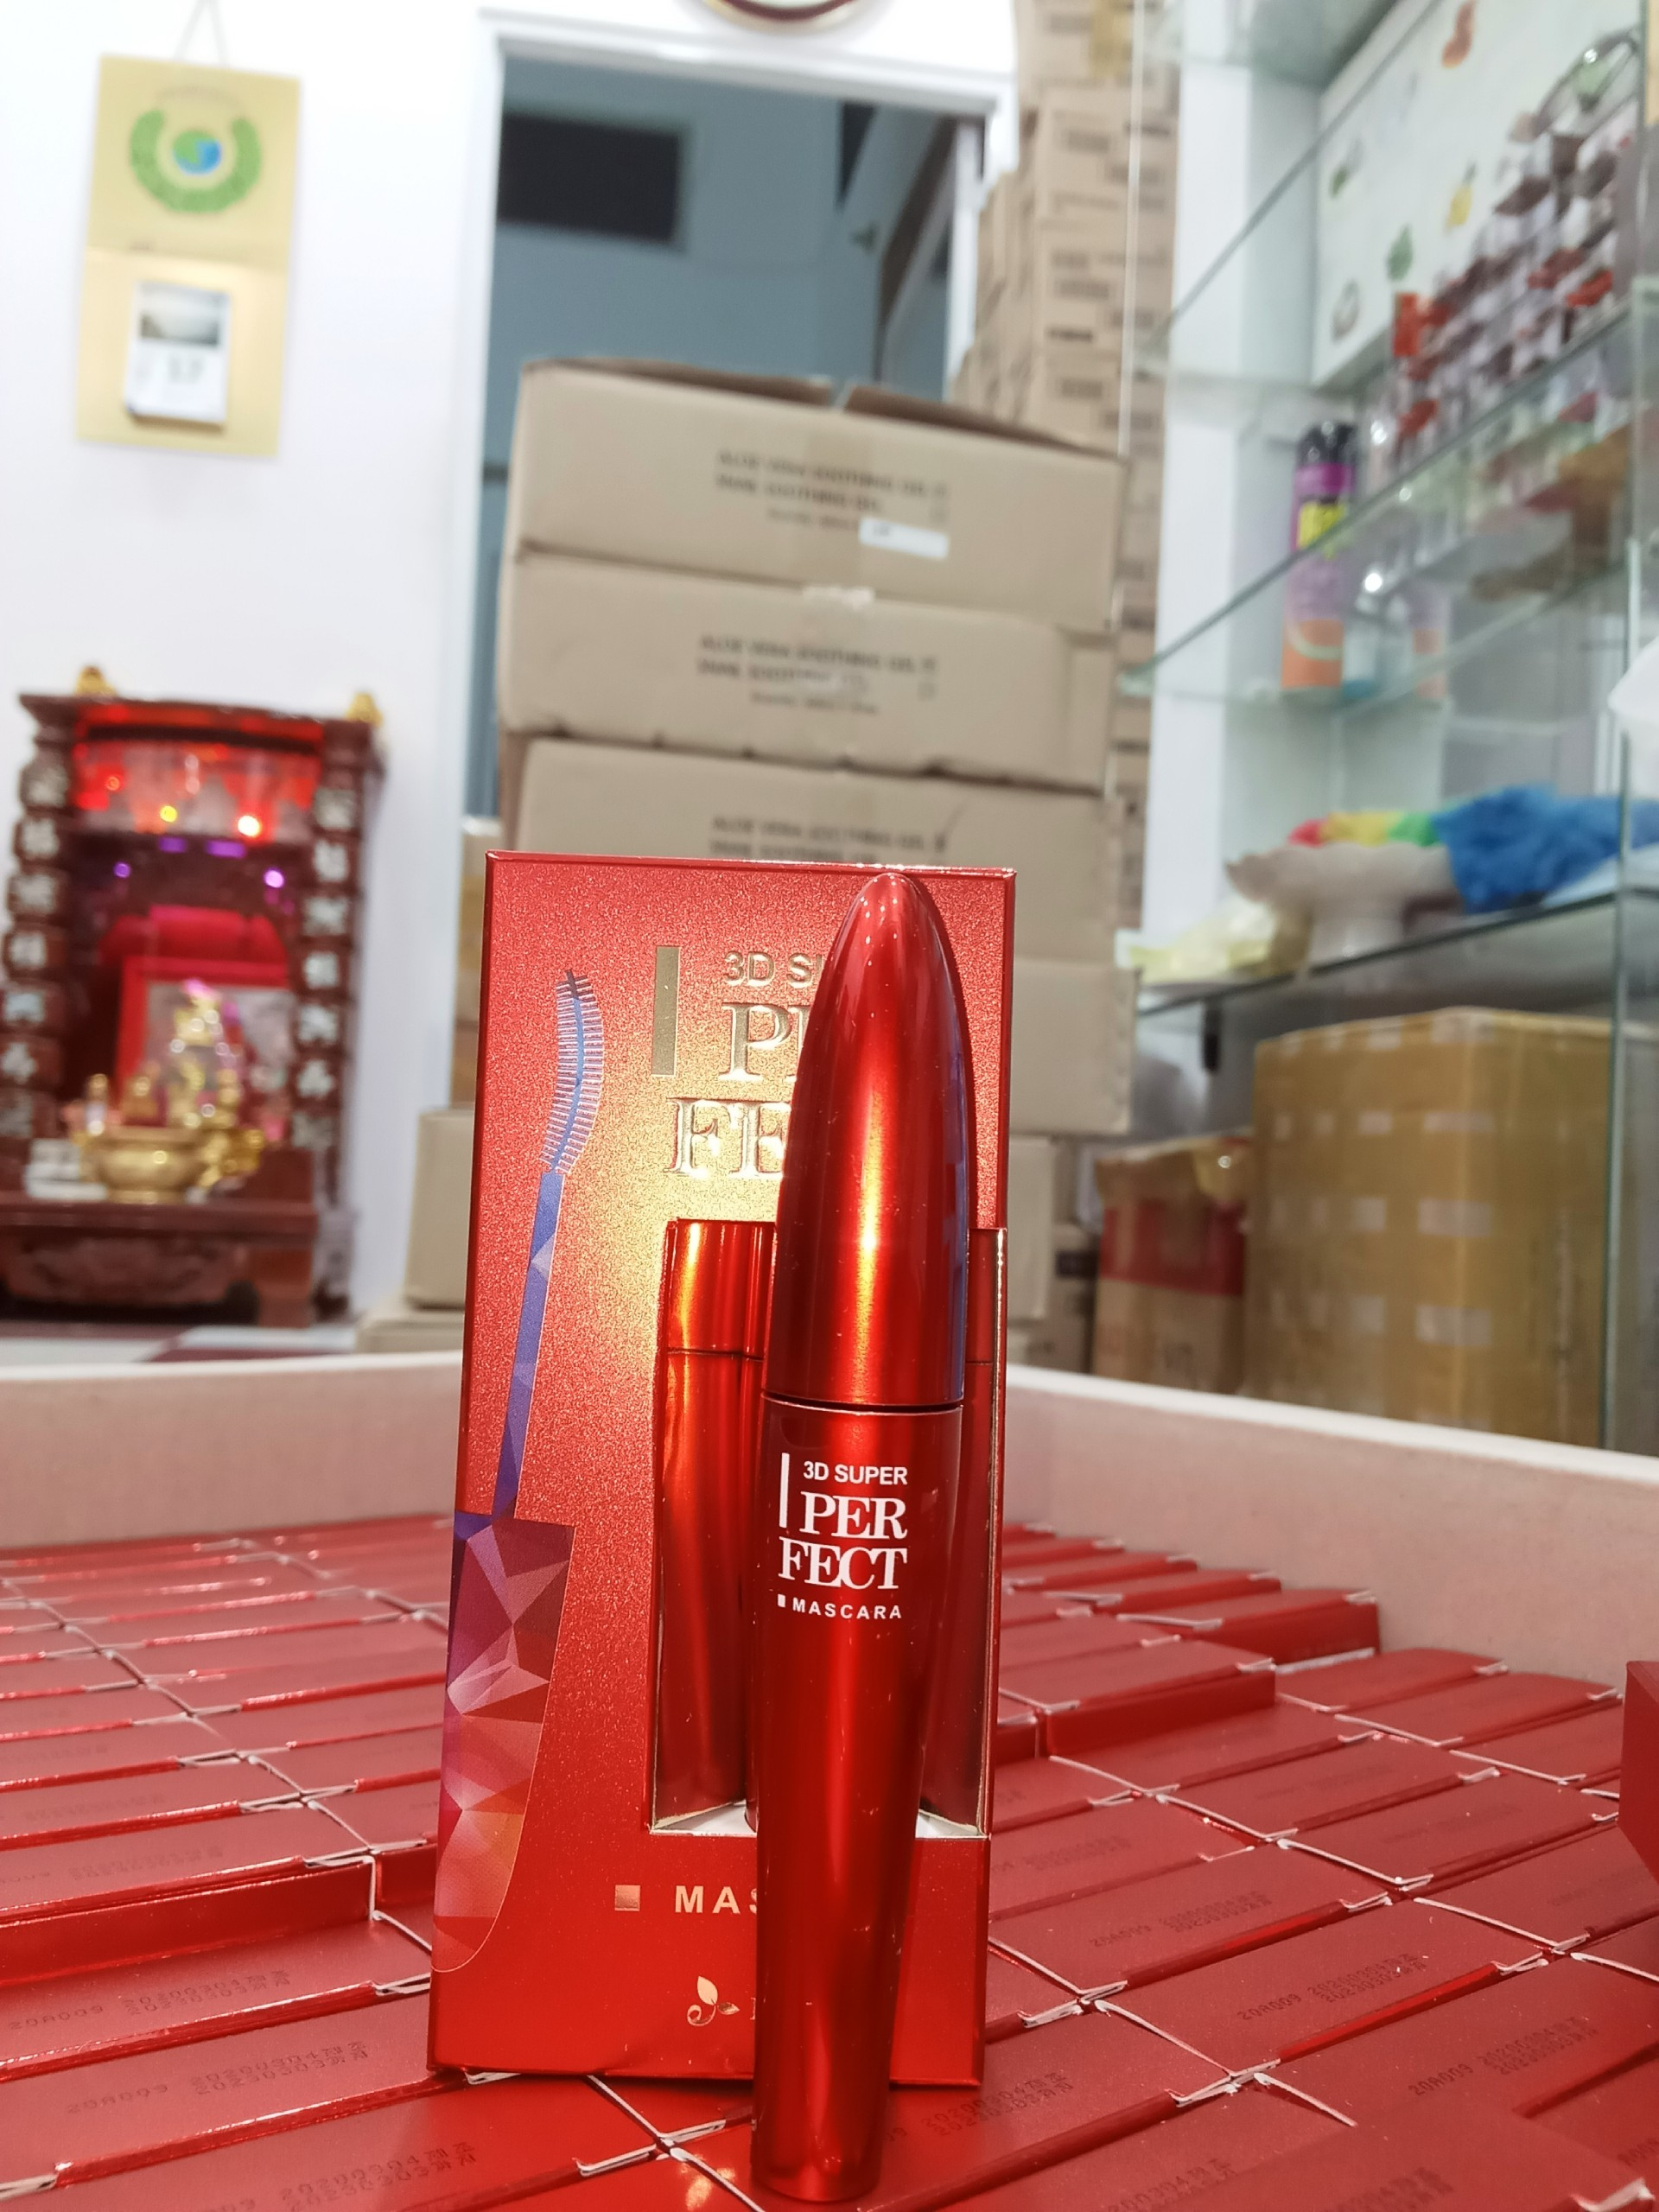 MARCARA ECOSY SUPER PERFECT 3D RED